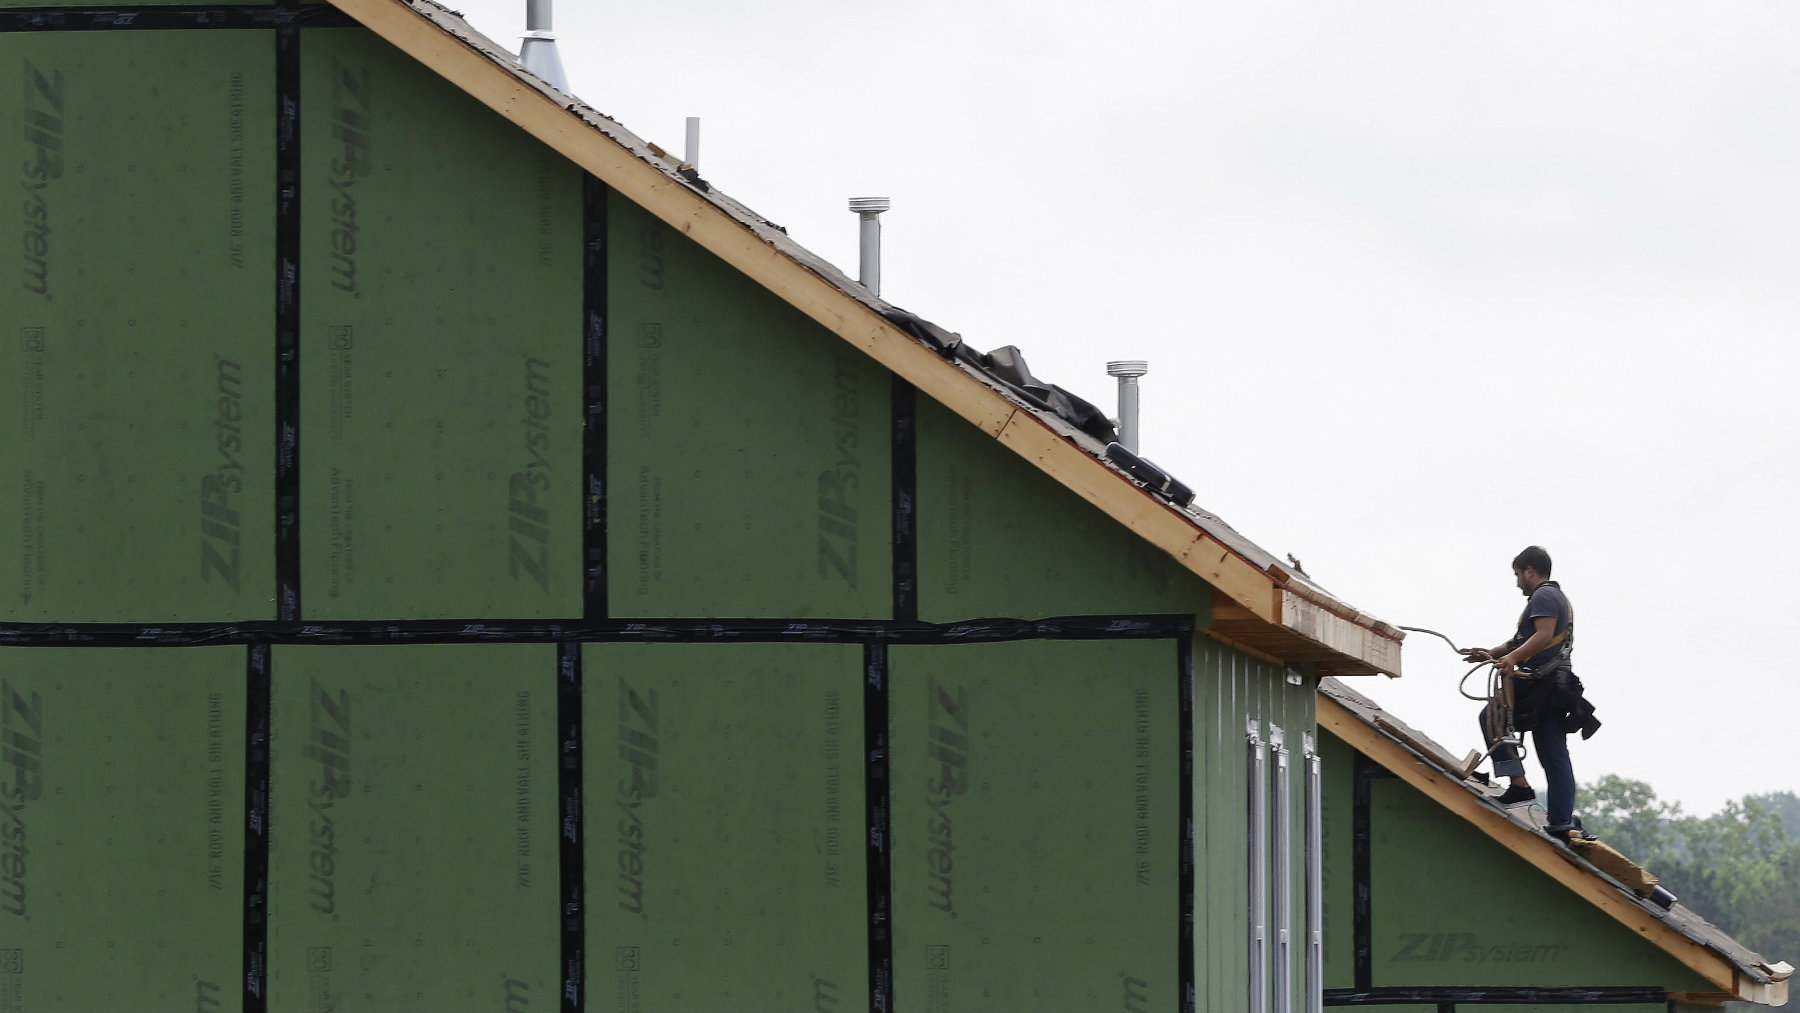 A roofer works on a home under construction in the Briar Chapel community in Chapel Hill, North Carolina.